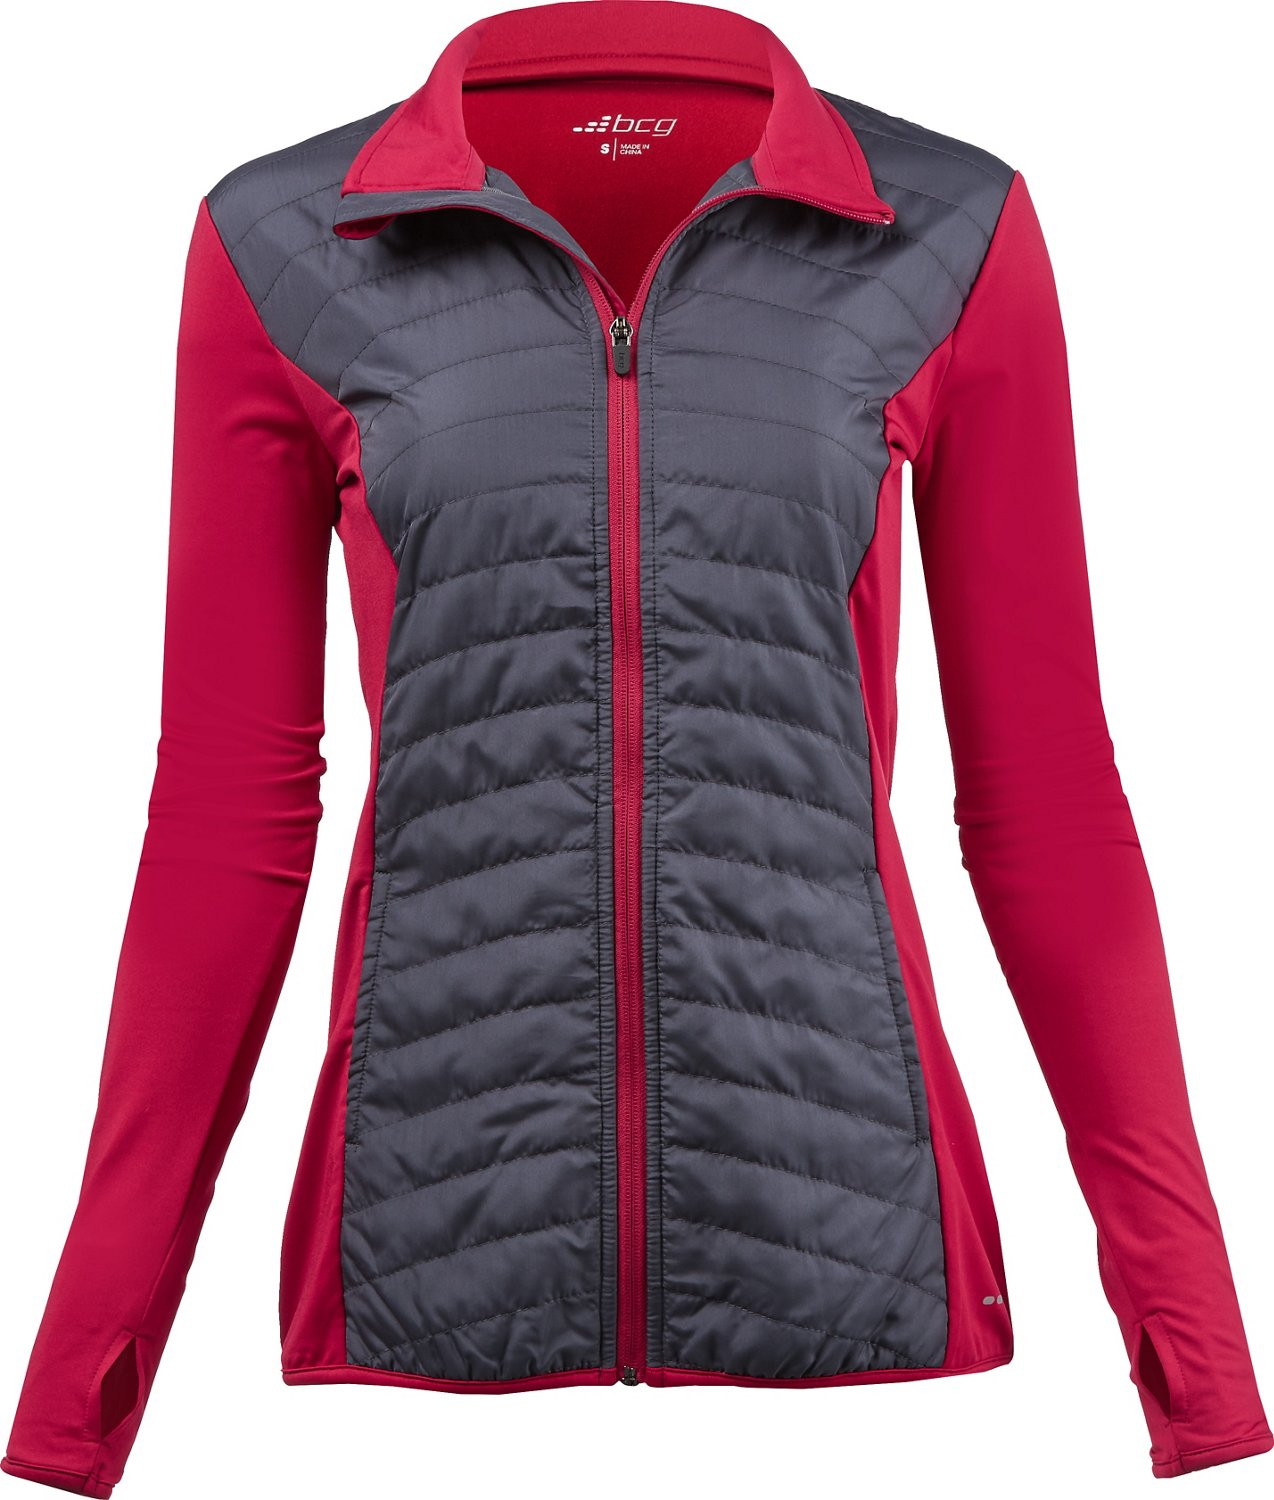 Jackets For Women Academy Jacket Tad Inner Polar Safety Display Product Reviews Bcg Womens Cold Weather Quilted Front